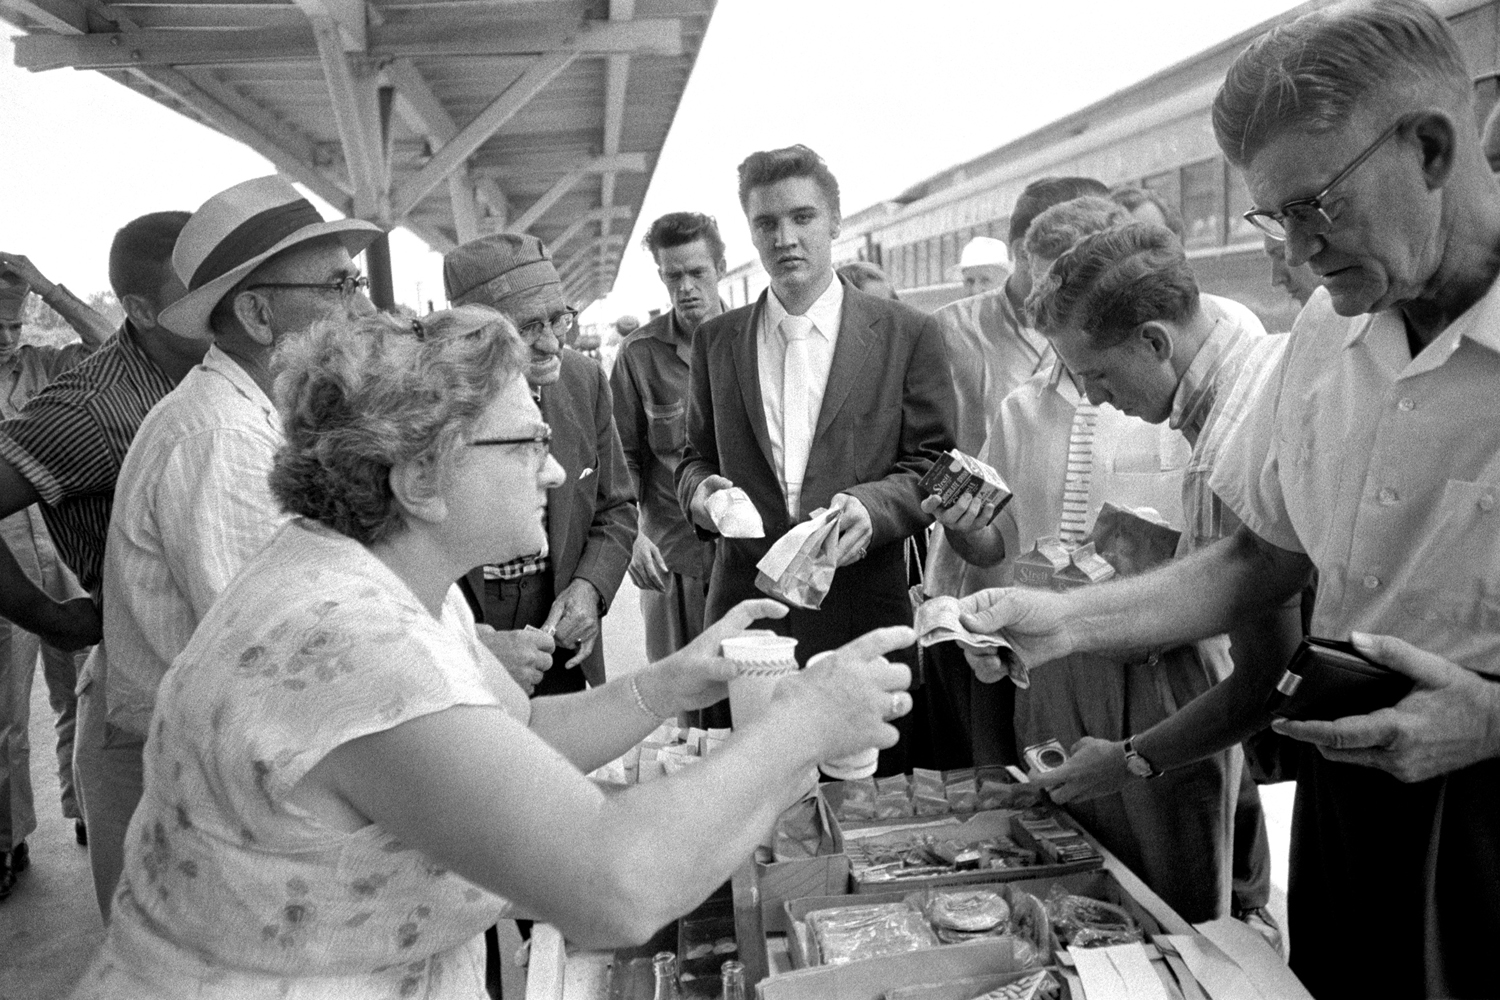 July 4, 1956. Lunchtime in Sheffield, Alabama. He's got his snowcones and chicken wings…and his chocolate milk. Elvis never paid for anything, because he never knew where his money was. I was told that one time RCA gave Elvis $500 petty cash and he forgot where he put it. Elvis was too busy being Elvis — that was enough for him.